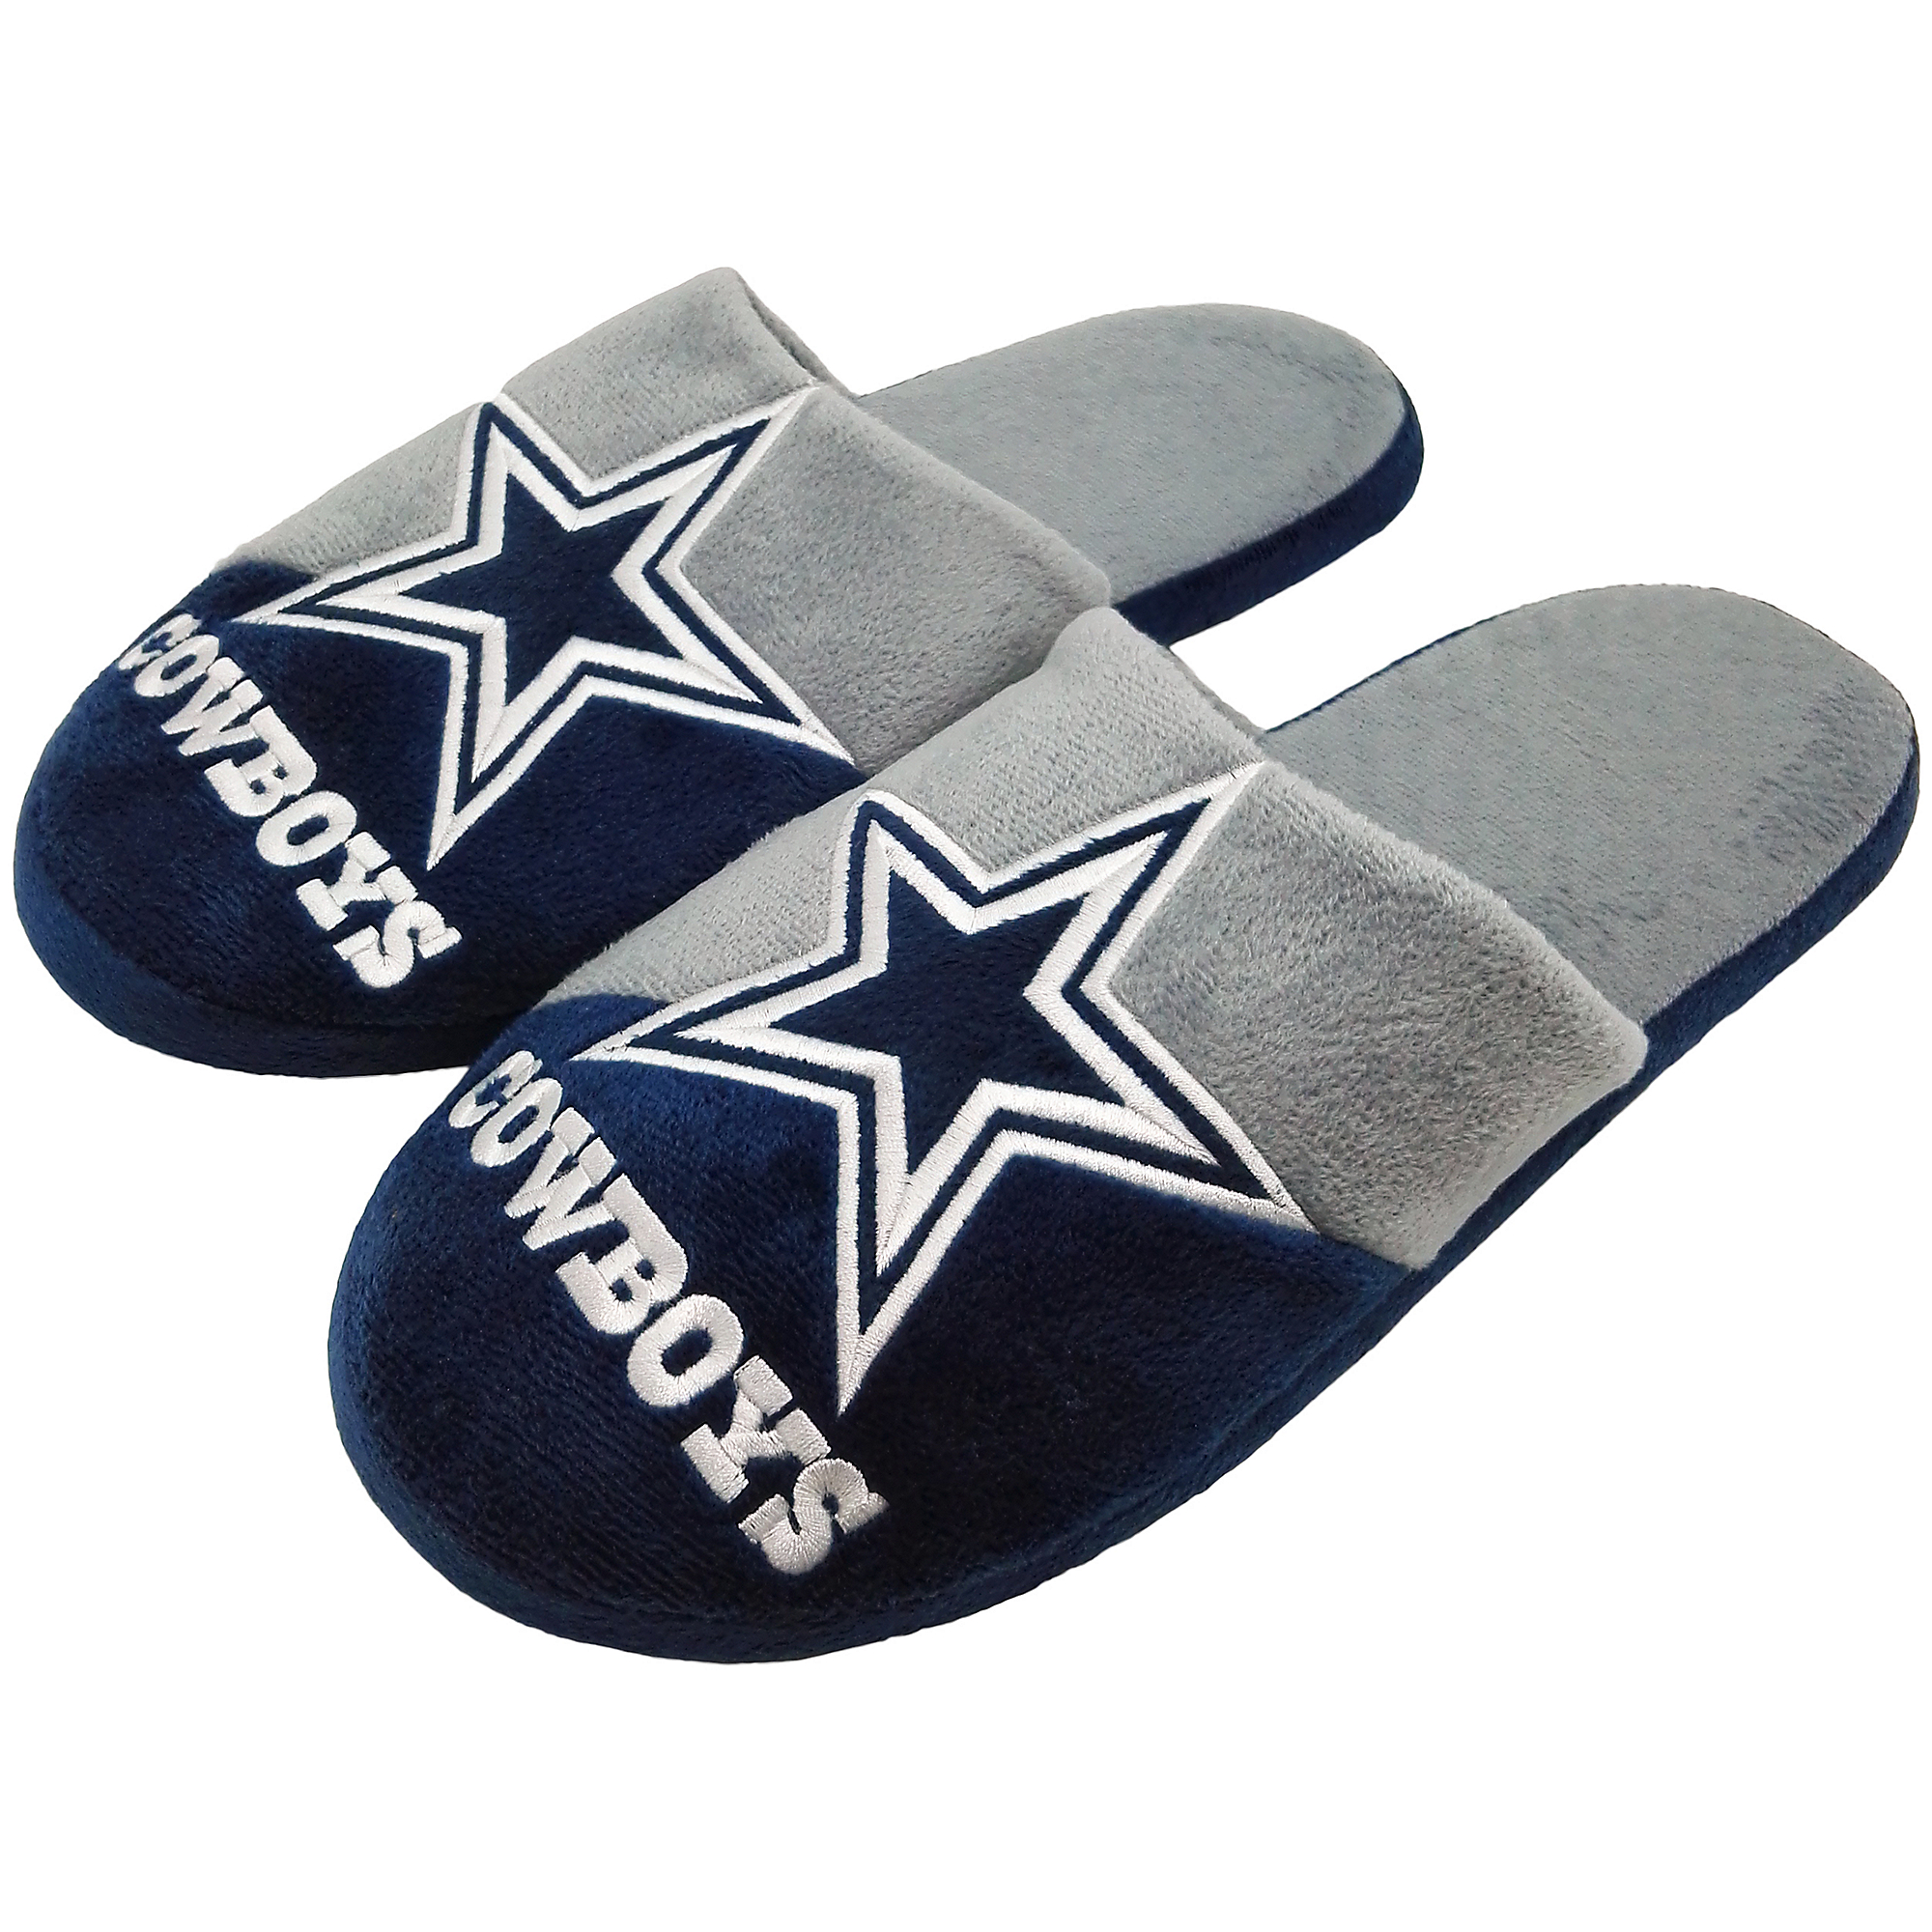 Dallas Cowboys Youth Colorblock Slippers - Size Large